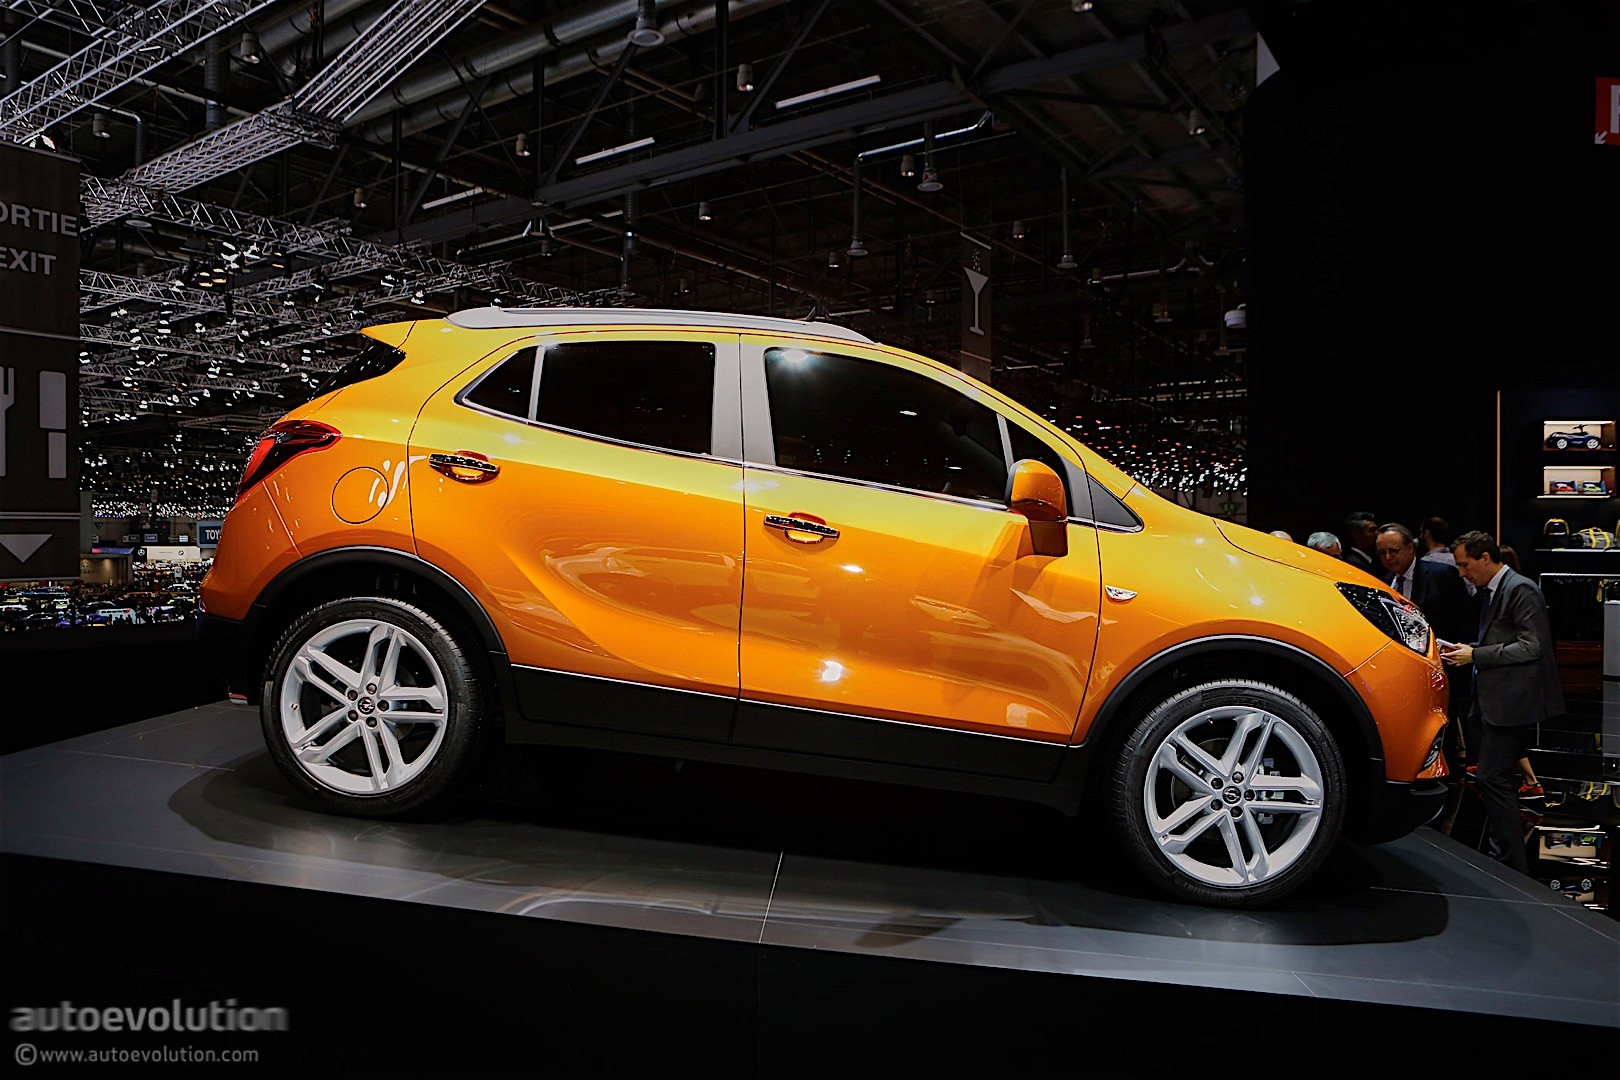 opel mokka x enters production in spain mokka surpasses. Black Bedroom Furniture Sets. Home Design Ideas